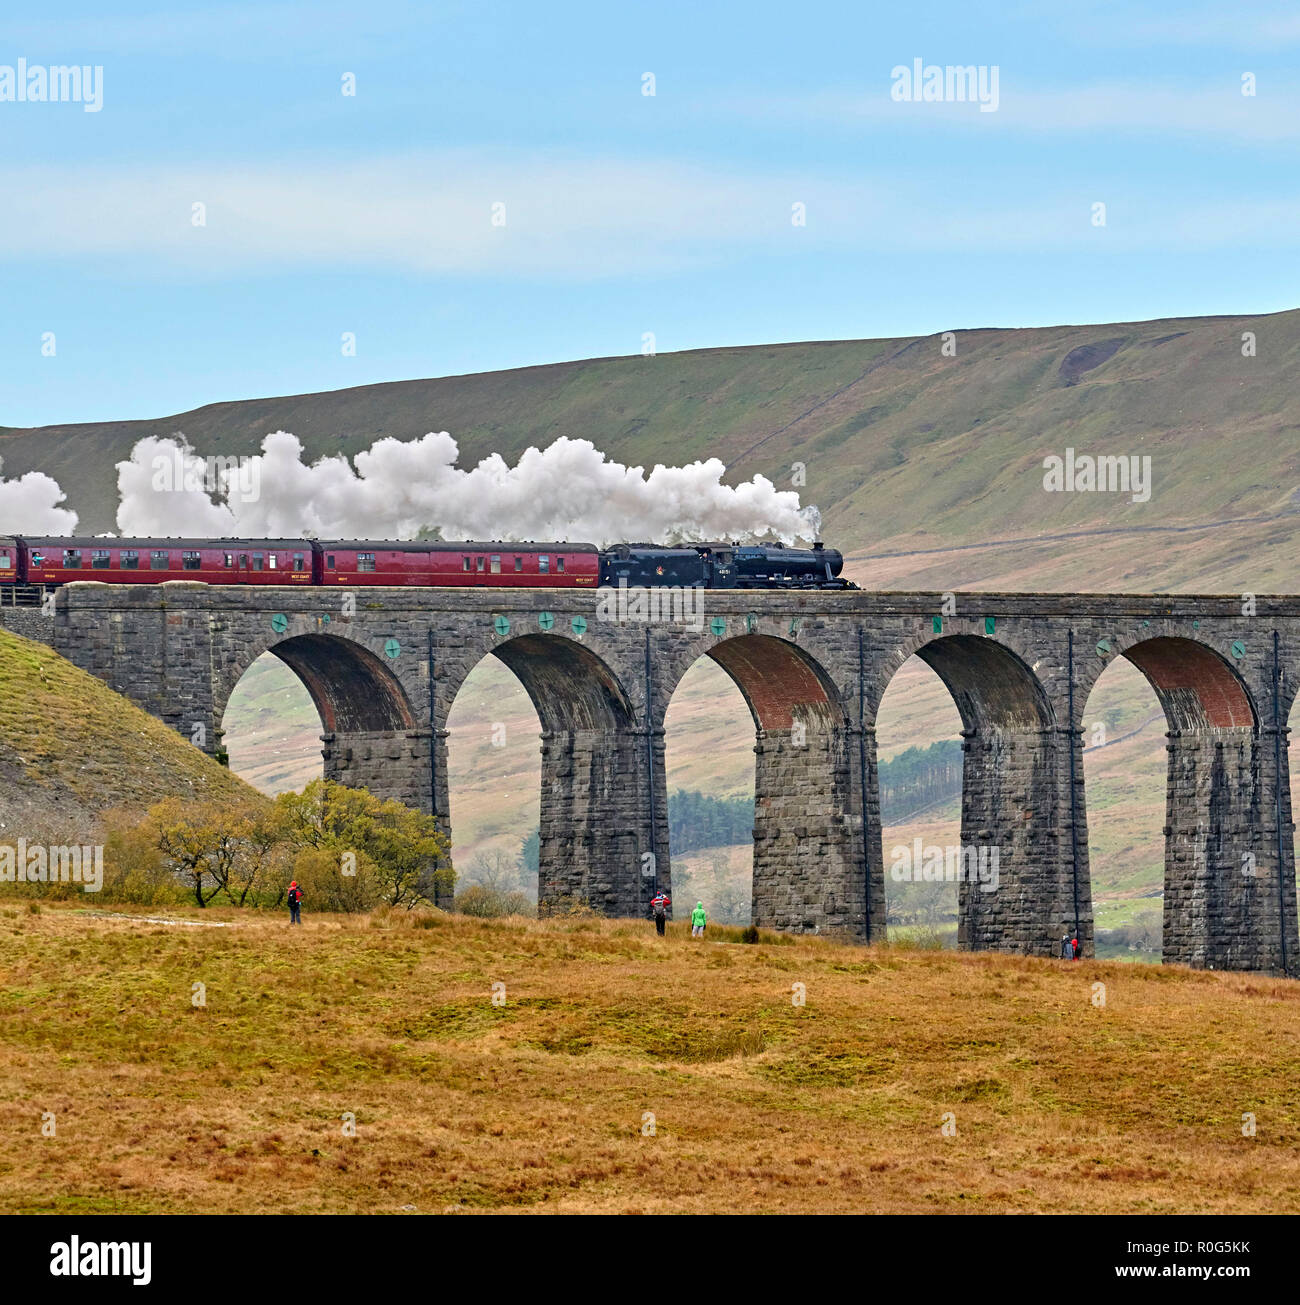 Preserved steam hauled train at Ribblehead Viaduct on the Settle & Carlisle Railway line, Yorkshire Dales National Park, Northern England, UK Stock Photo